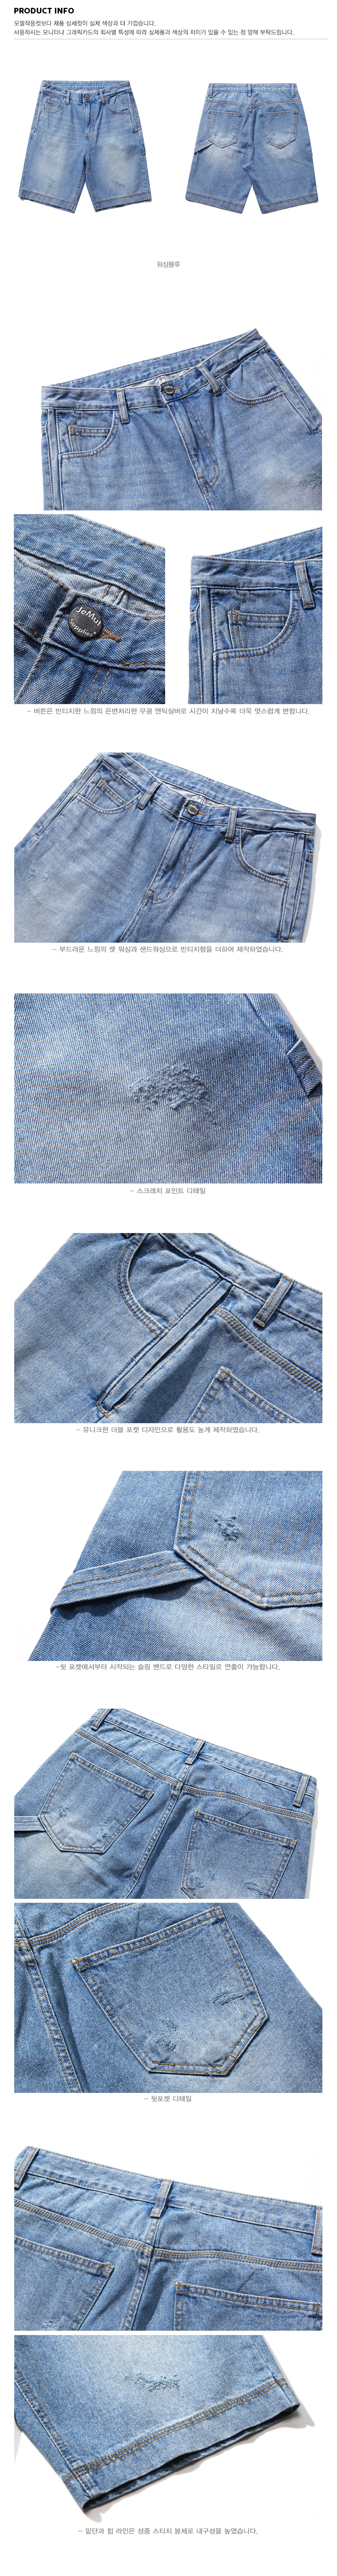 20180516_double_pocket_denim_shot_pants_detail_yh.jpg